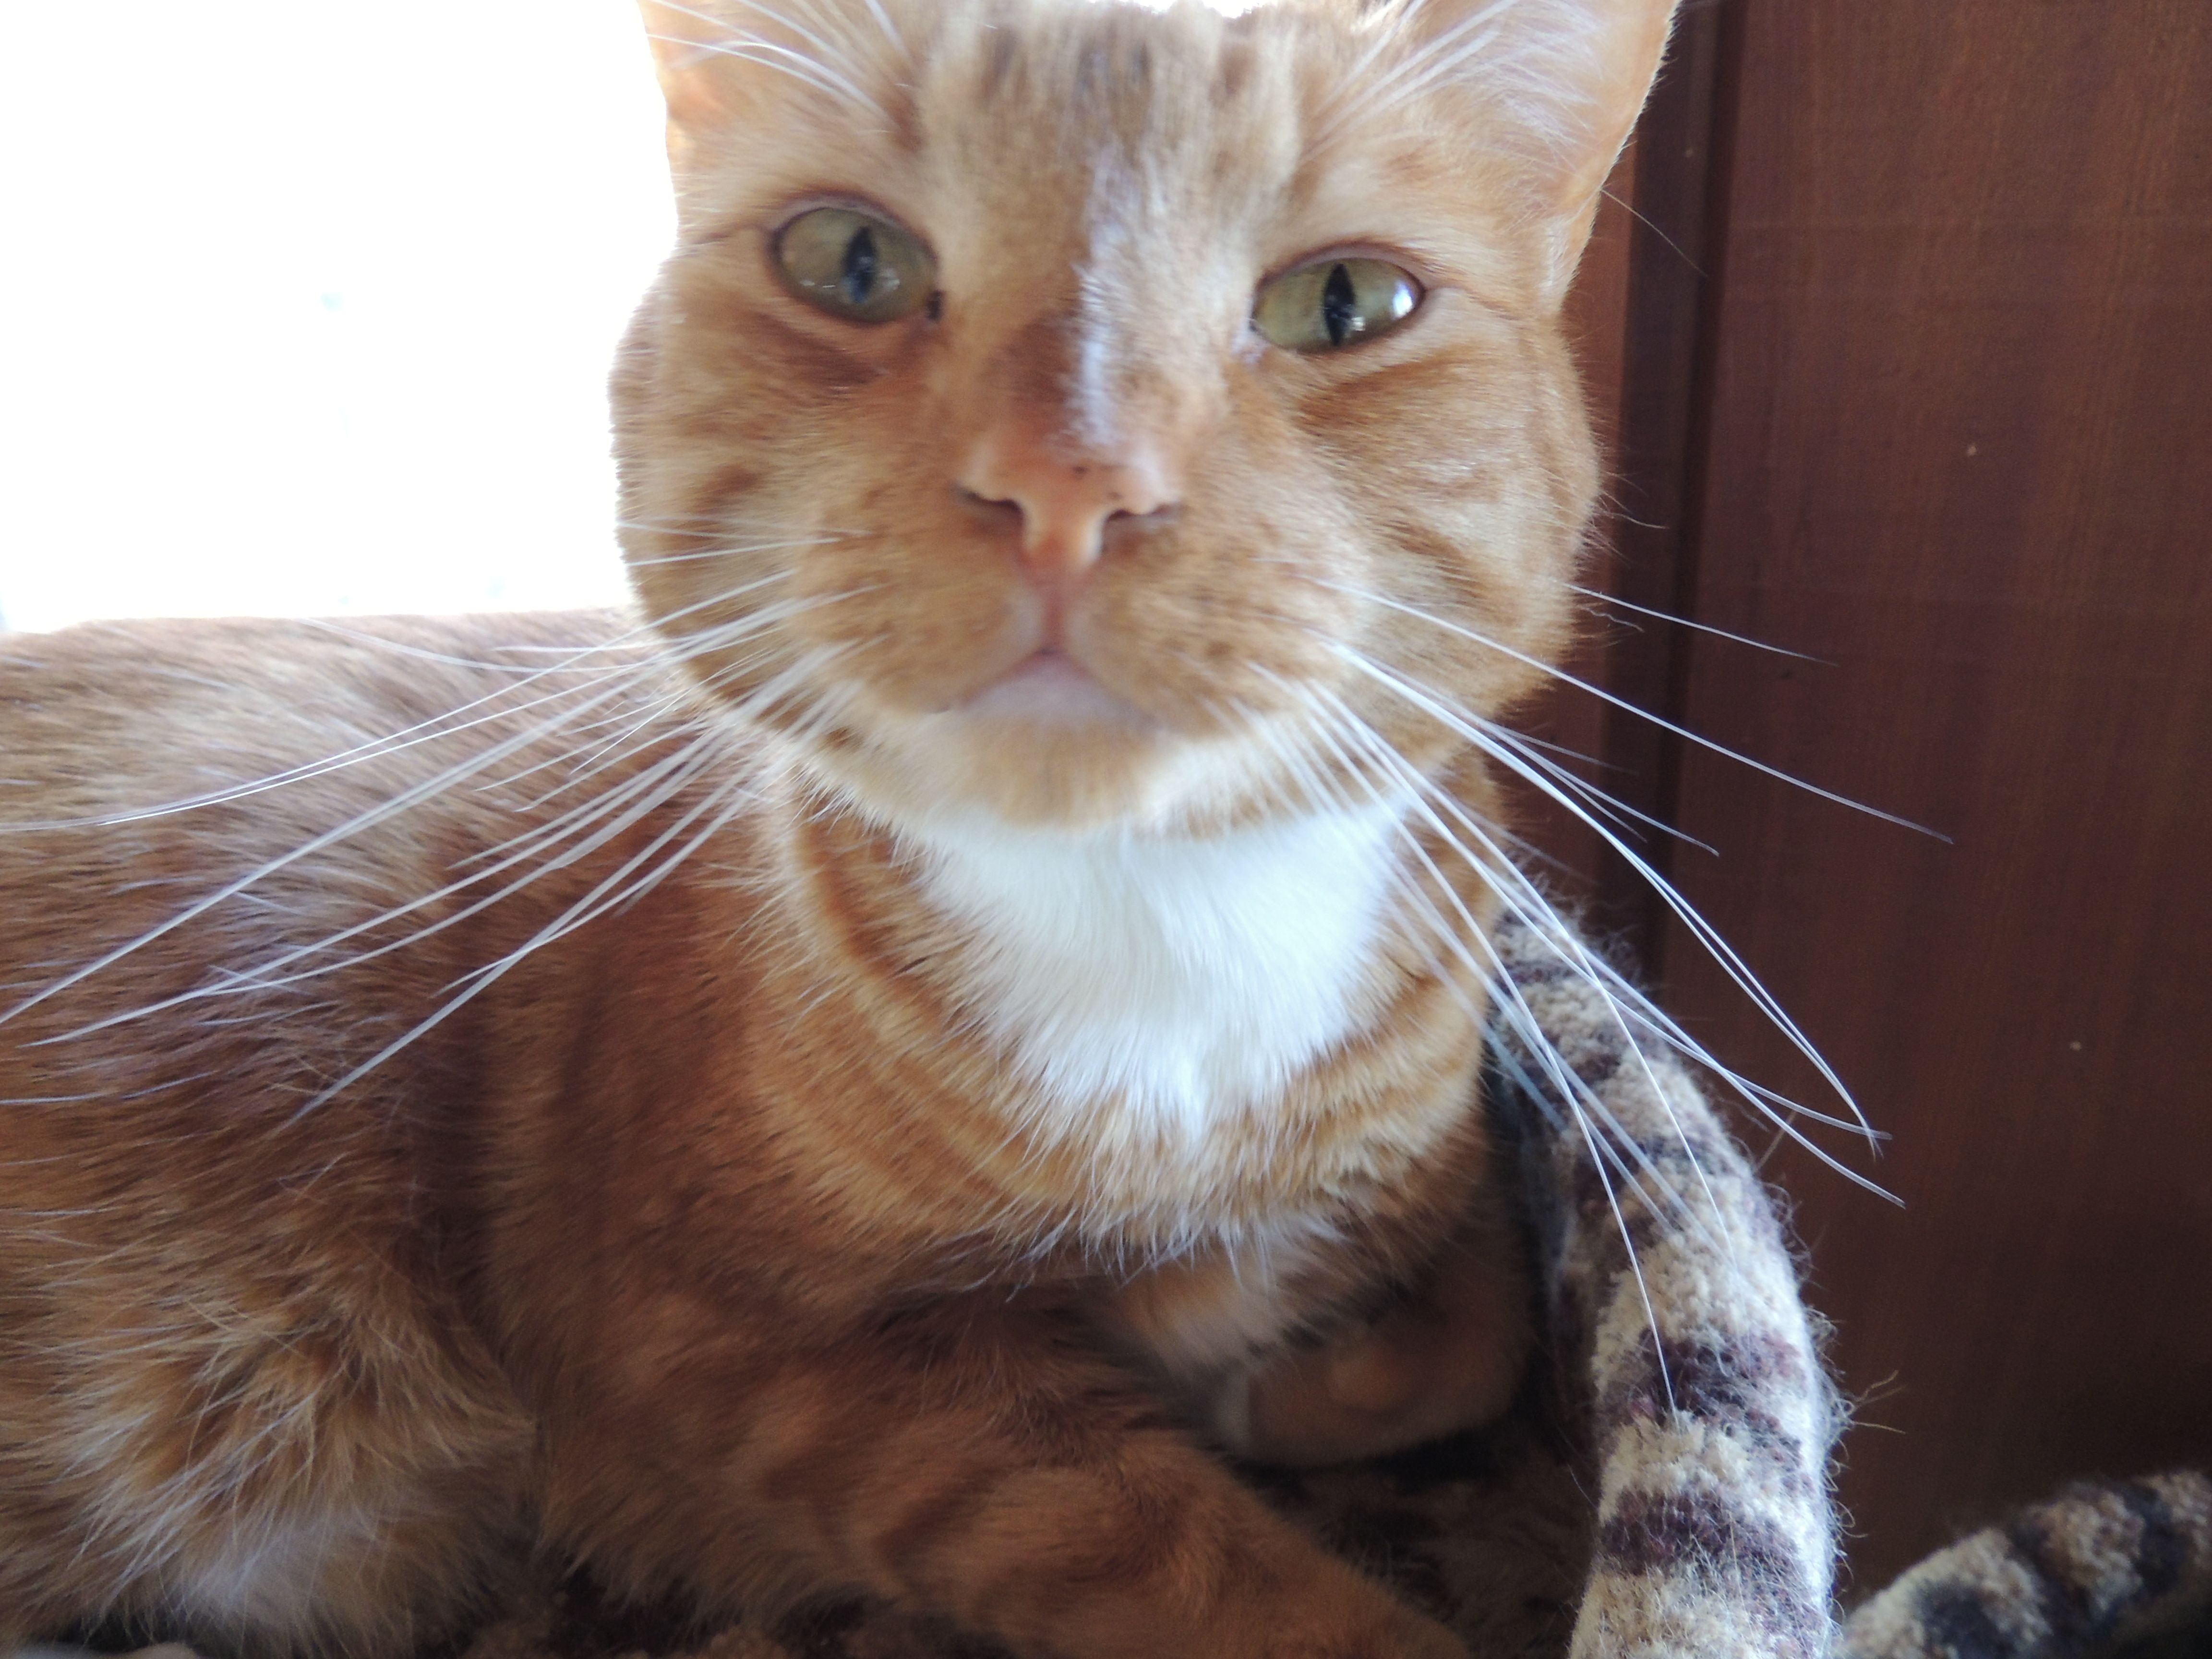 Orange soft paws are the perfect harmony for marmalade cats like luke here